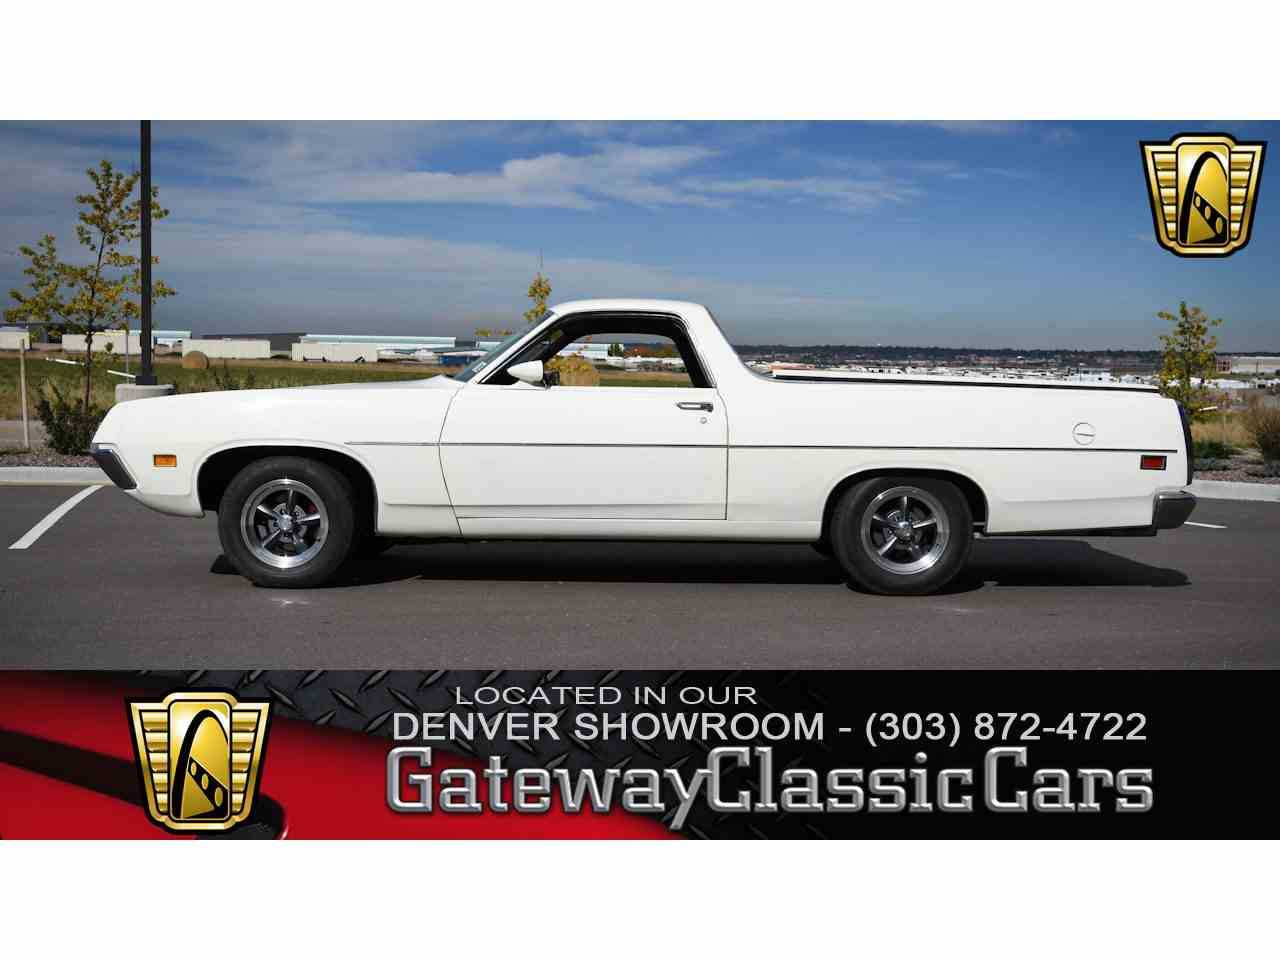 1972 Ford Ranchero Wiring Diagrams 1966 Diagram Free Download Schematic Simple Guide For 1963 Falcon 44